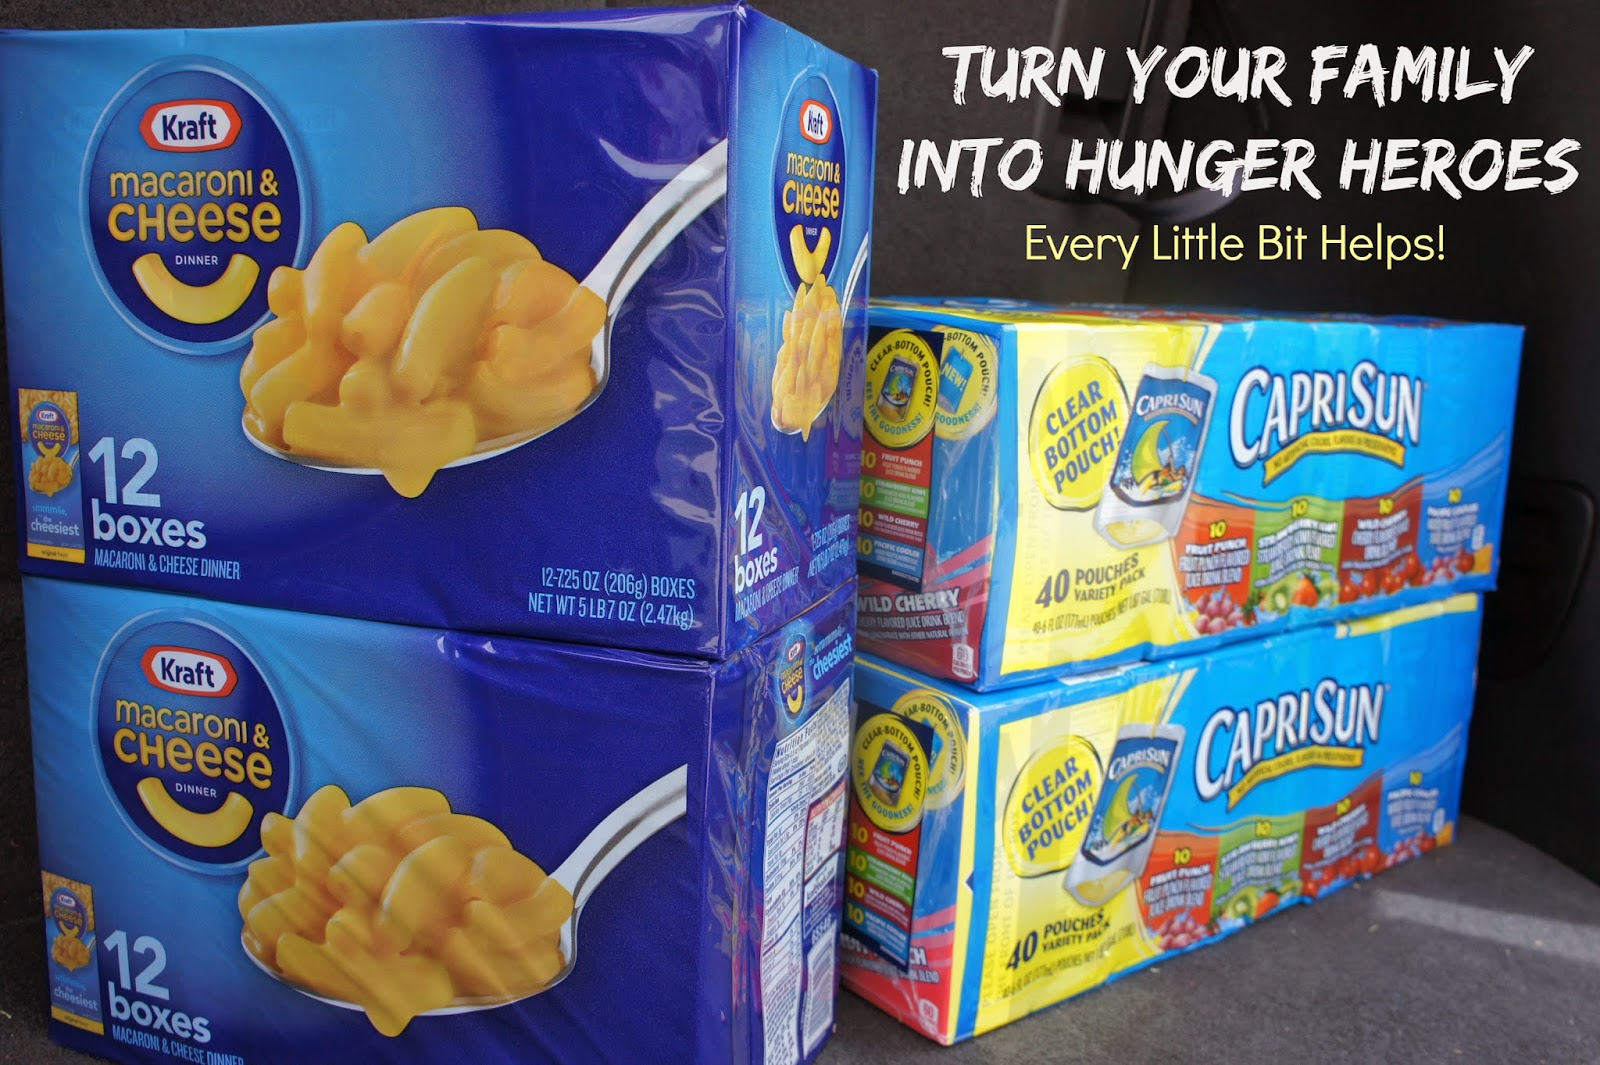 Your family can help fight hunger with Tyson, Kraft, Capri Sun and Sam's